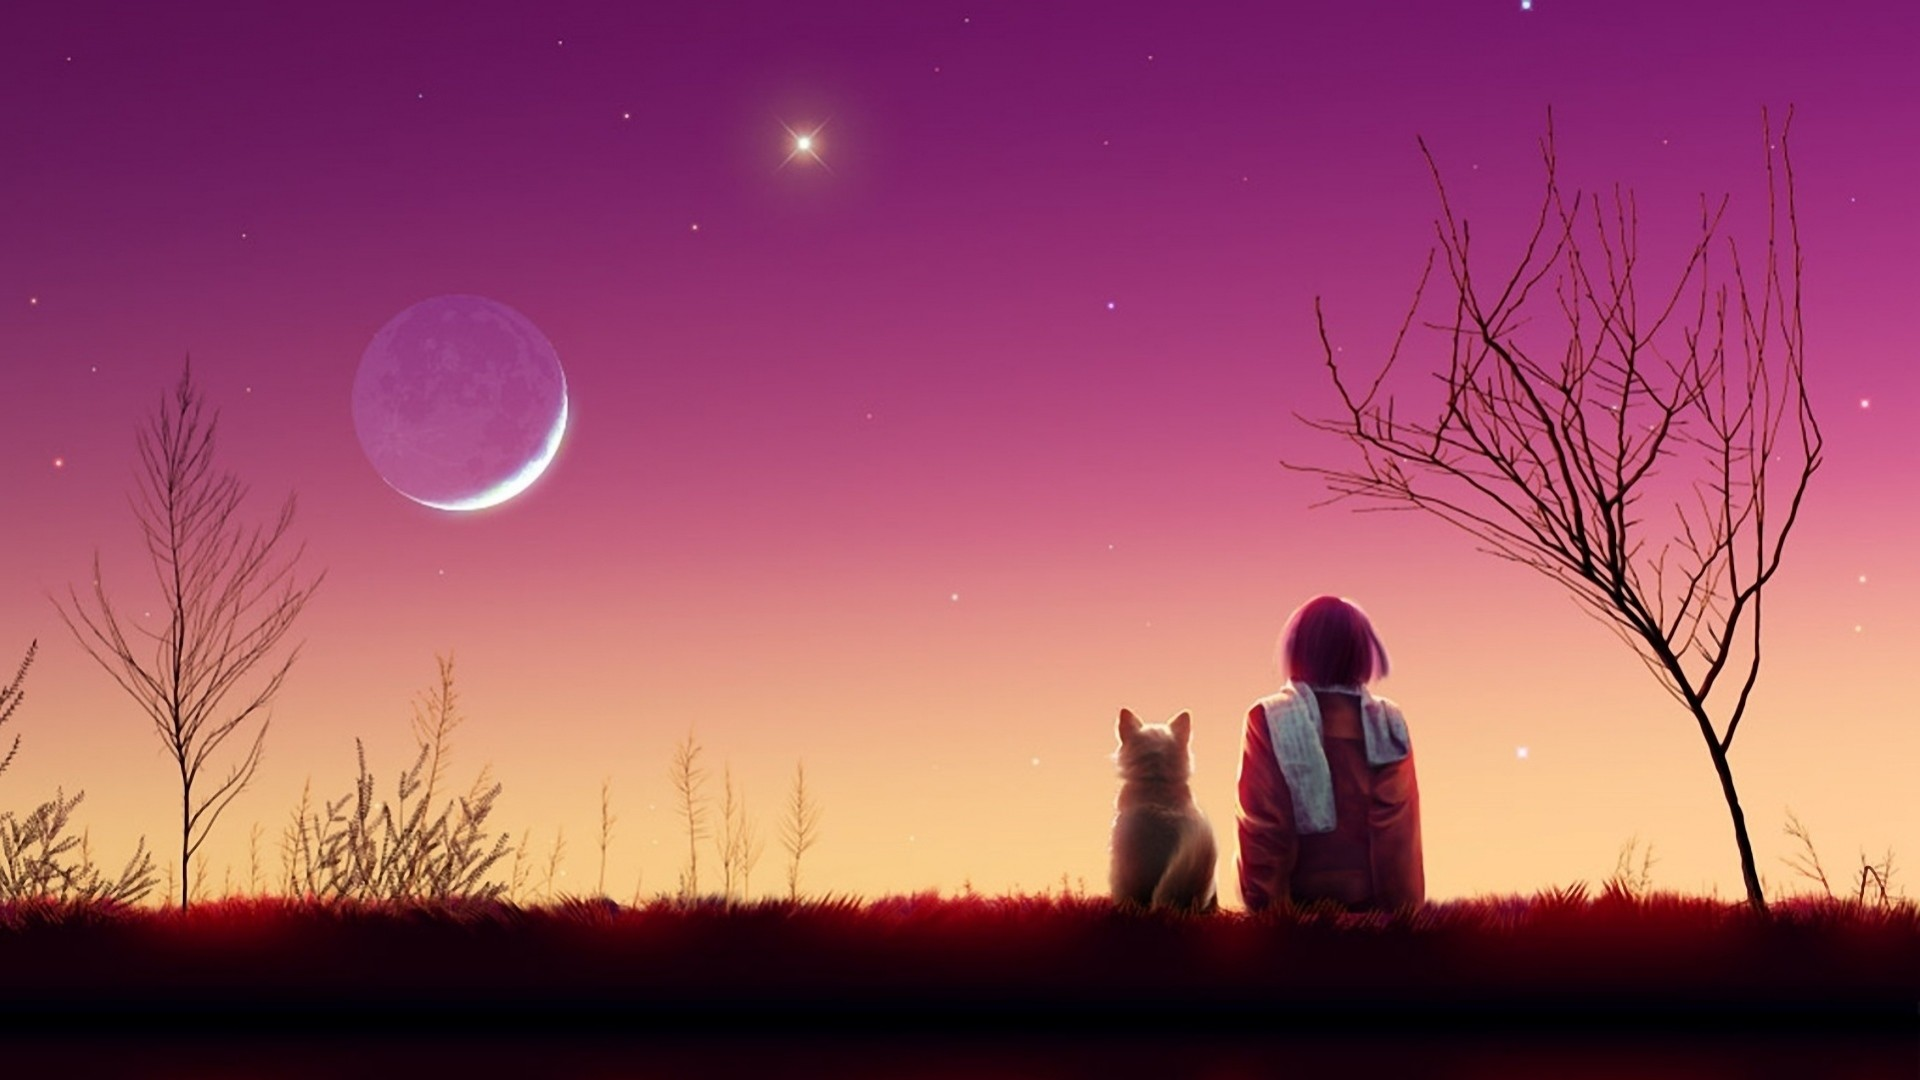 1920x1080, Download Anime Hd Wallpapers Background - Anime Pc Background - HD Wallpaper